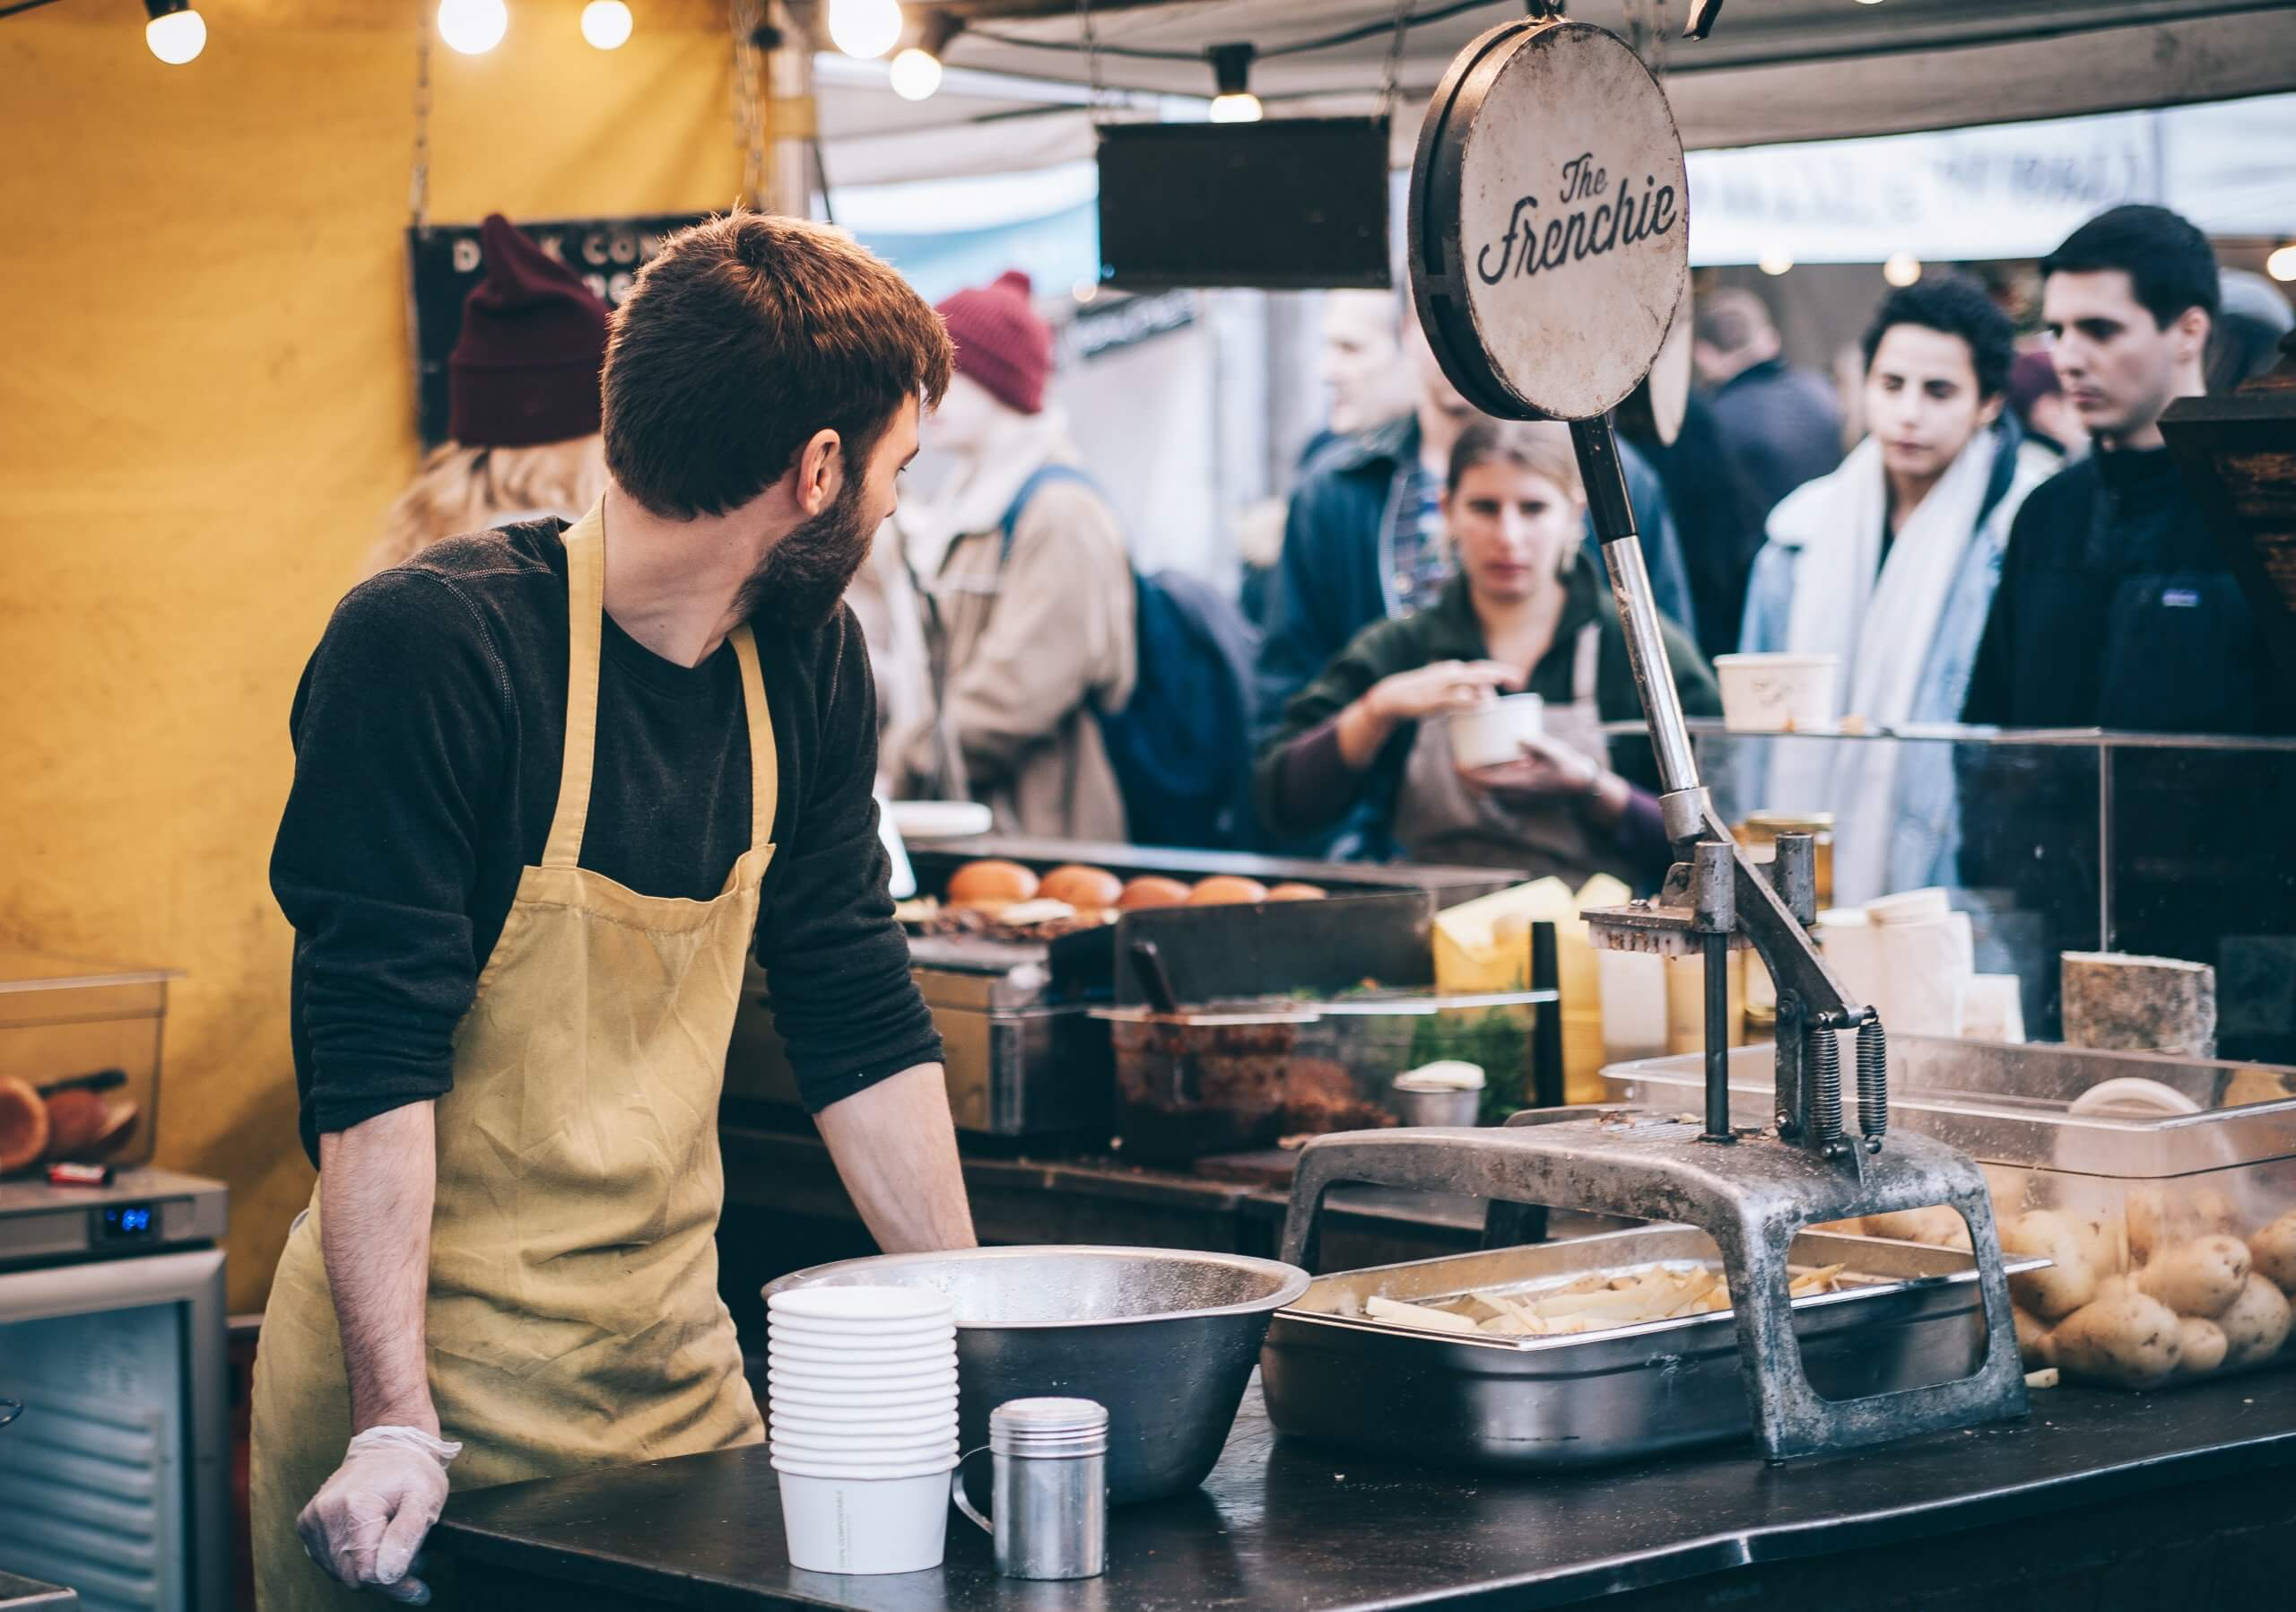 man serving at a food stall